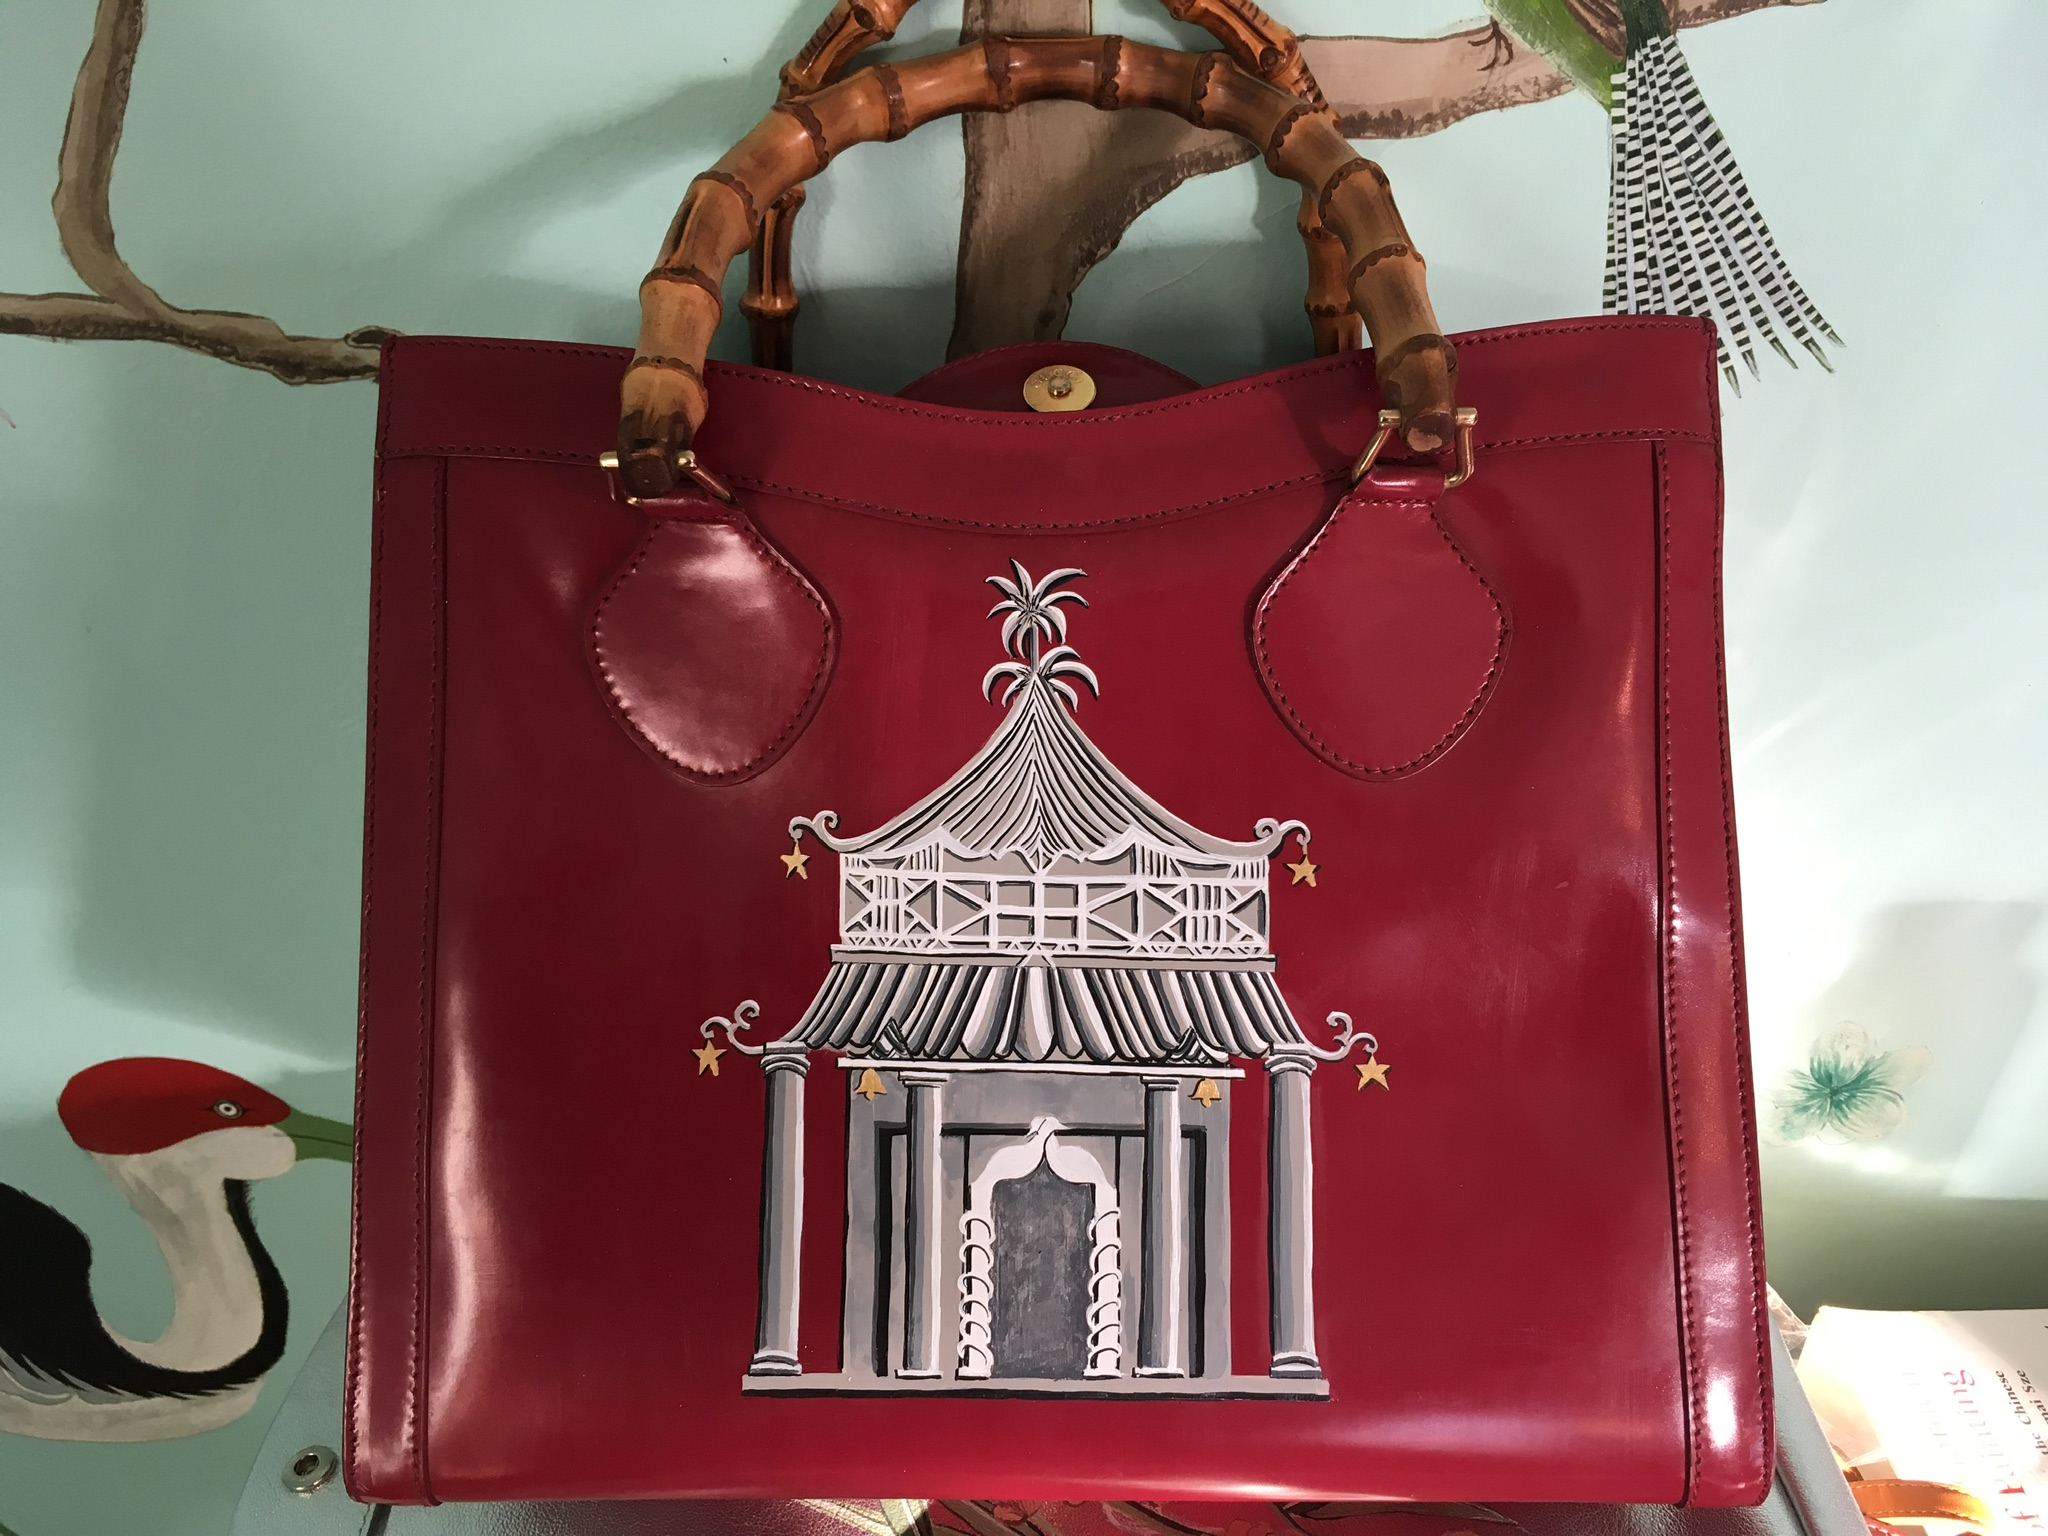 gucci diana leather handbag hand painted with grisaille chinoiserie pagoda